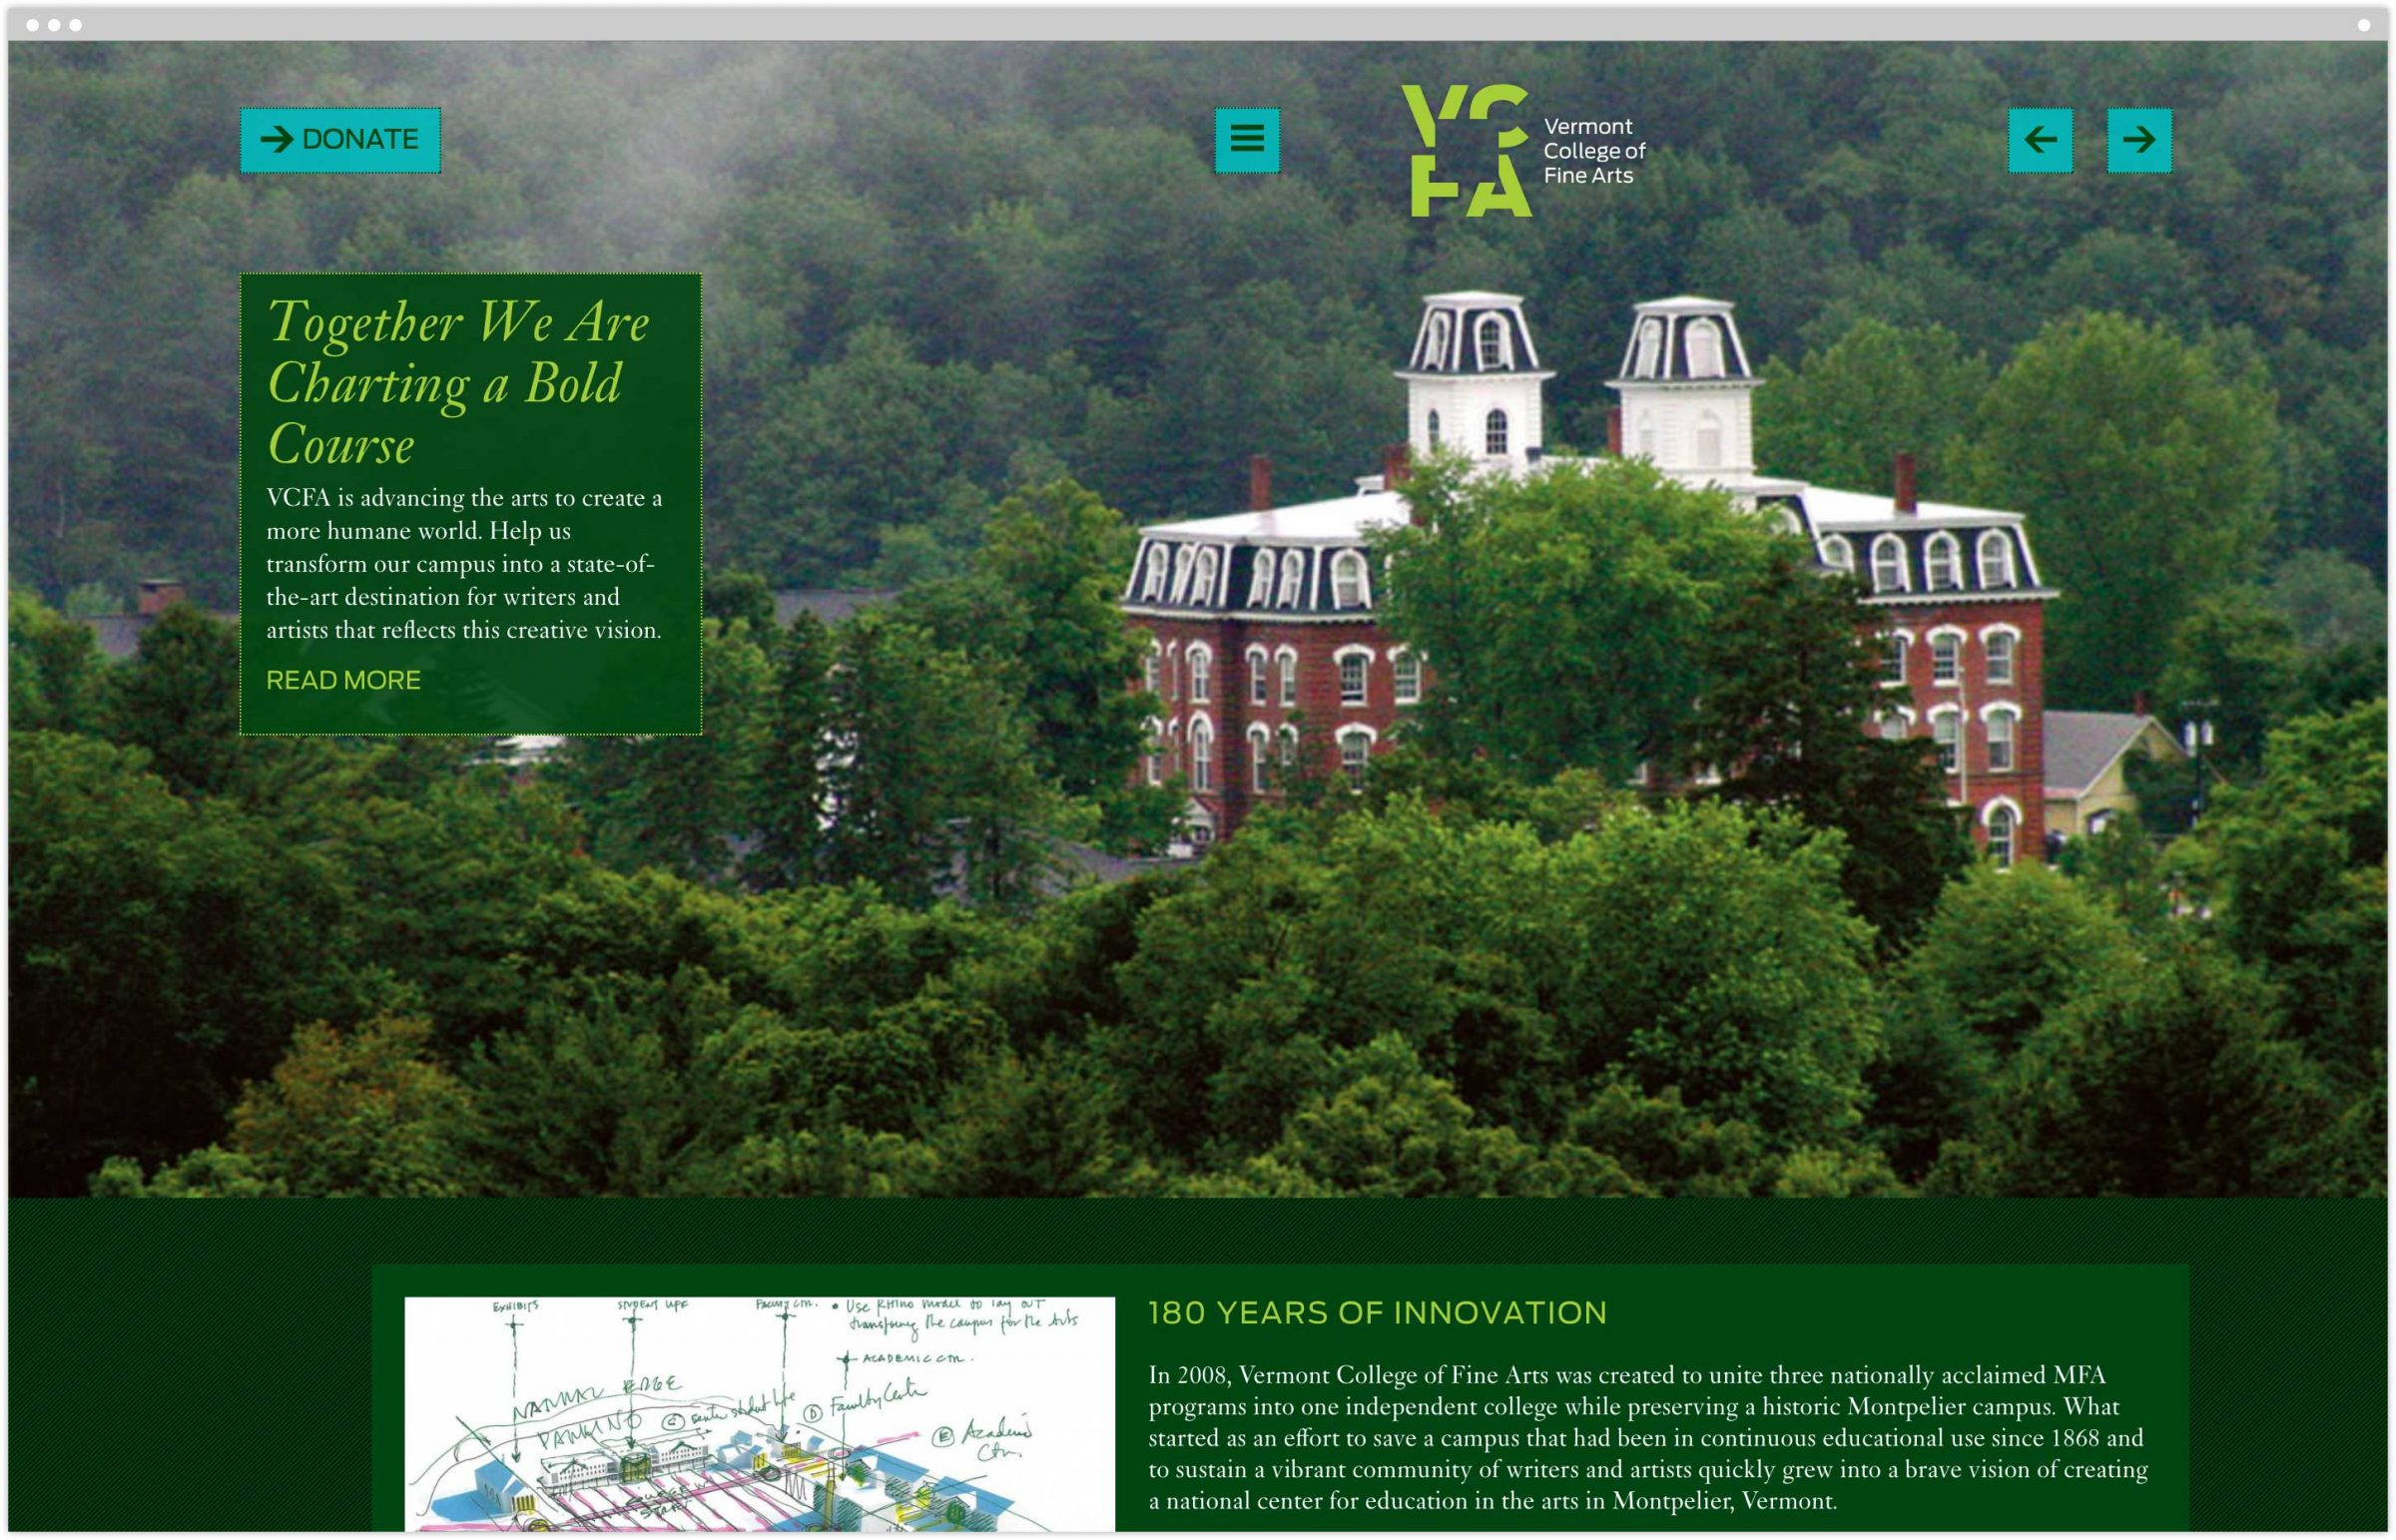 Vermont College of Fine Arts campaign homepage